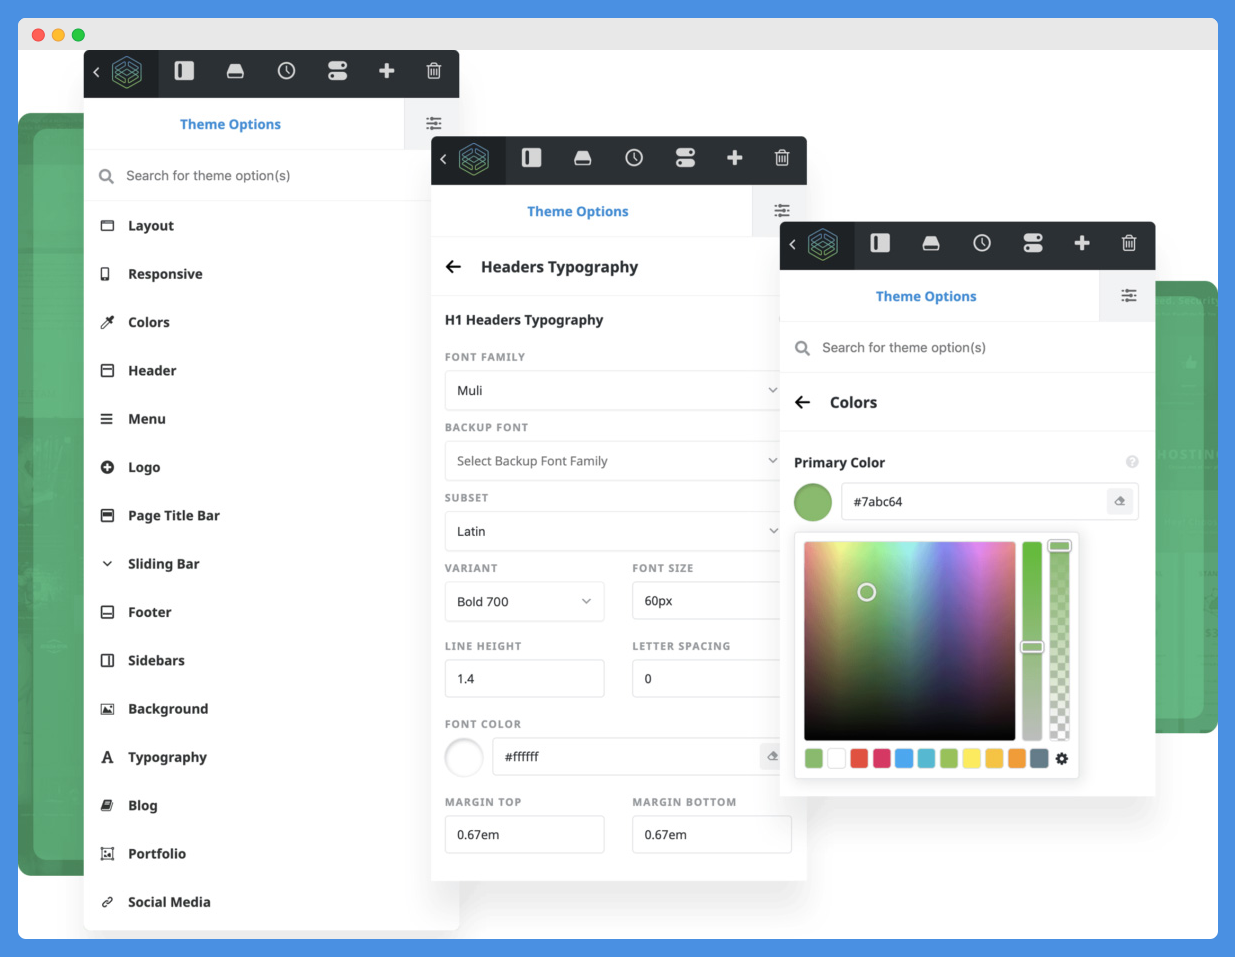 https://avada.theme-fusion.com/wp-content/uploads/2019/07/fusion-theme-options-new-1200x937.png